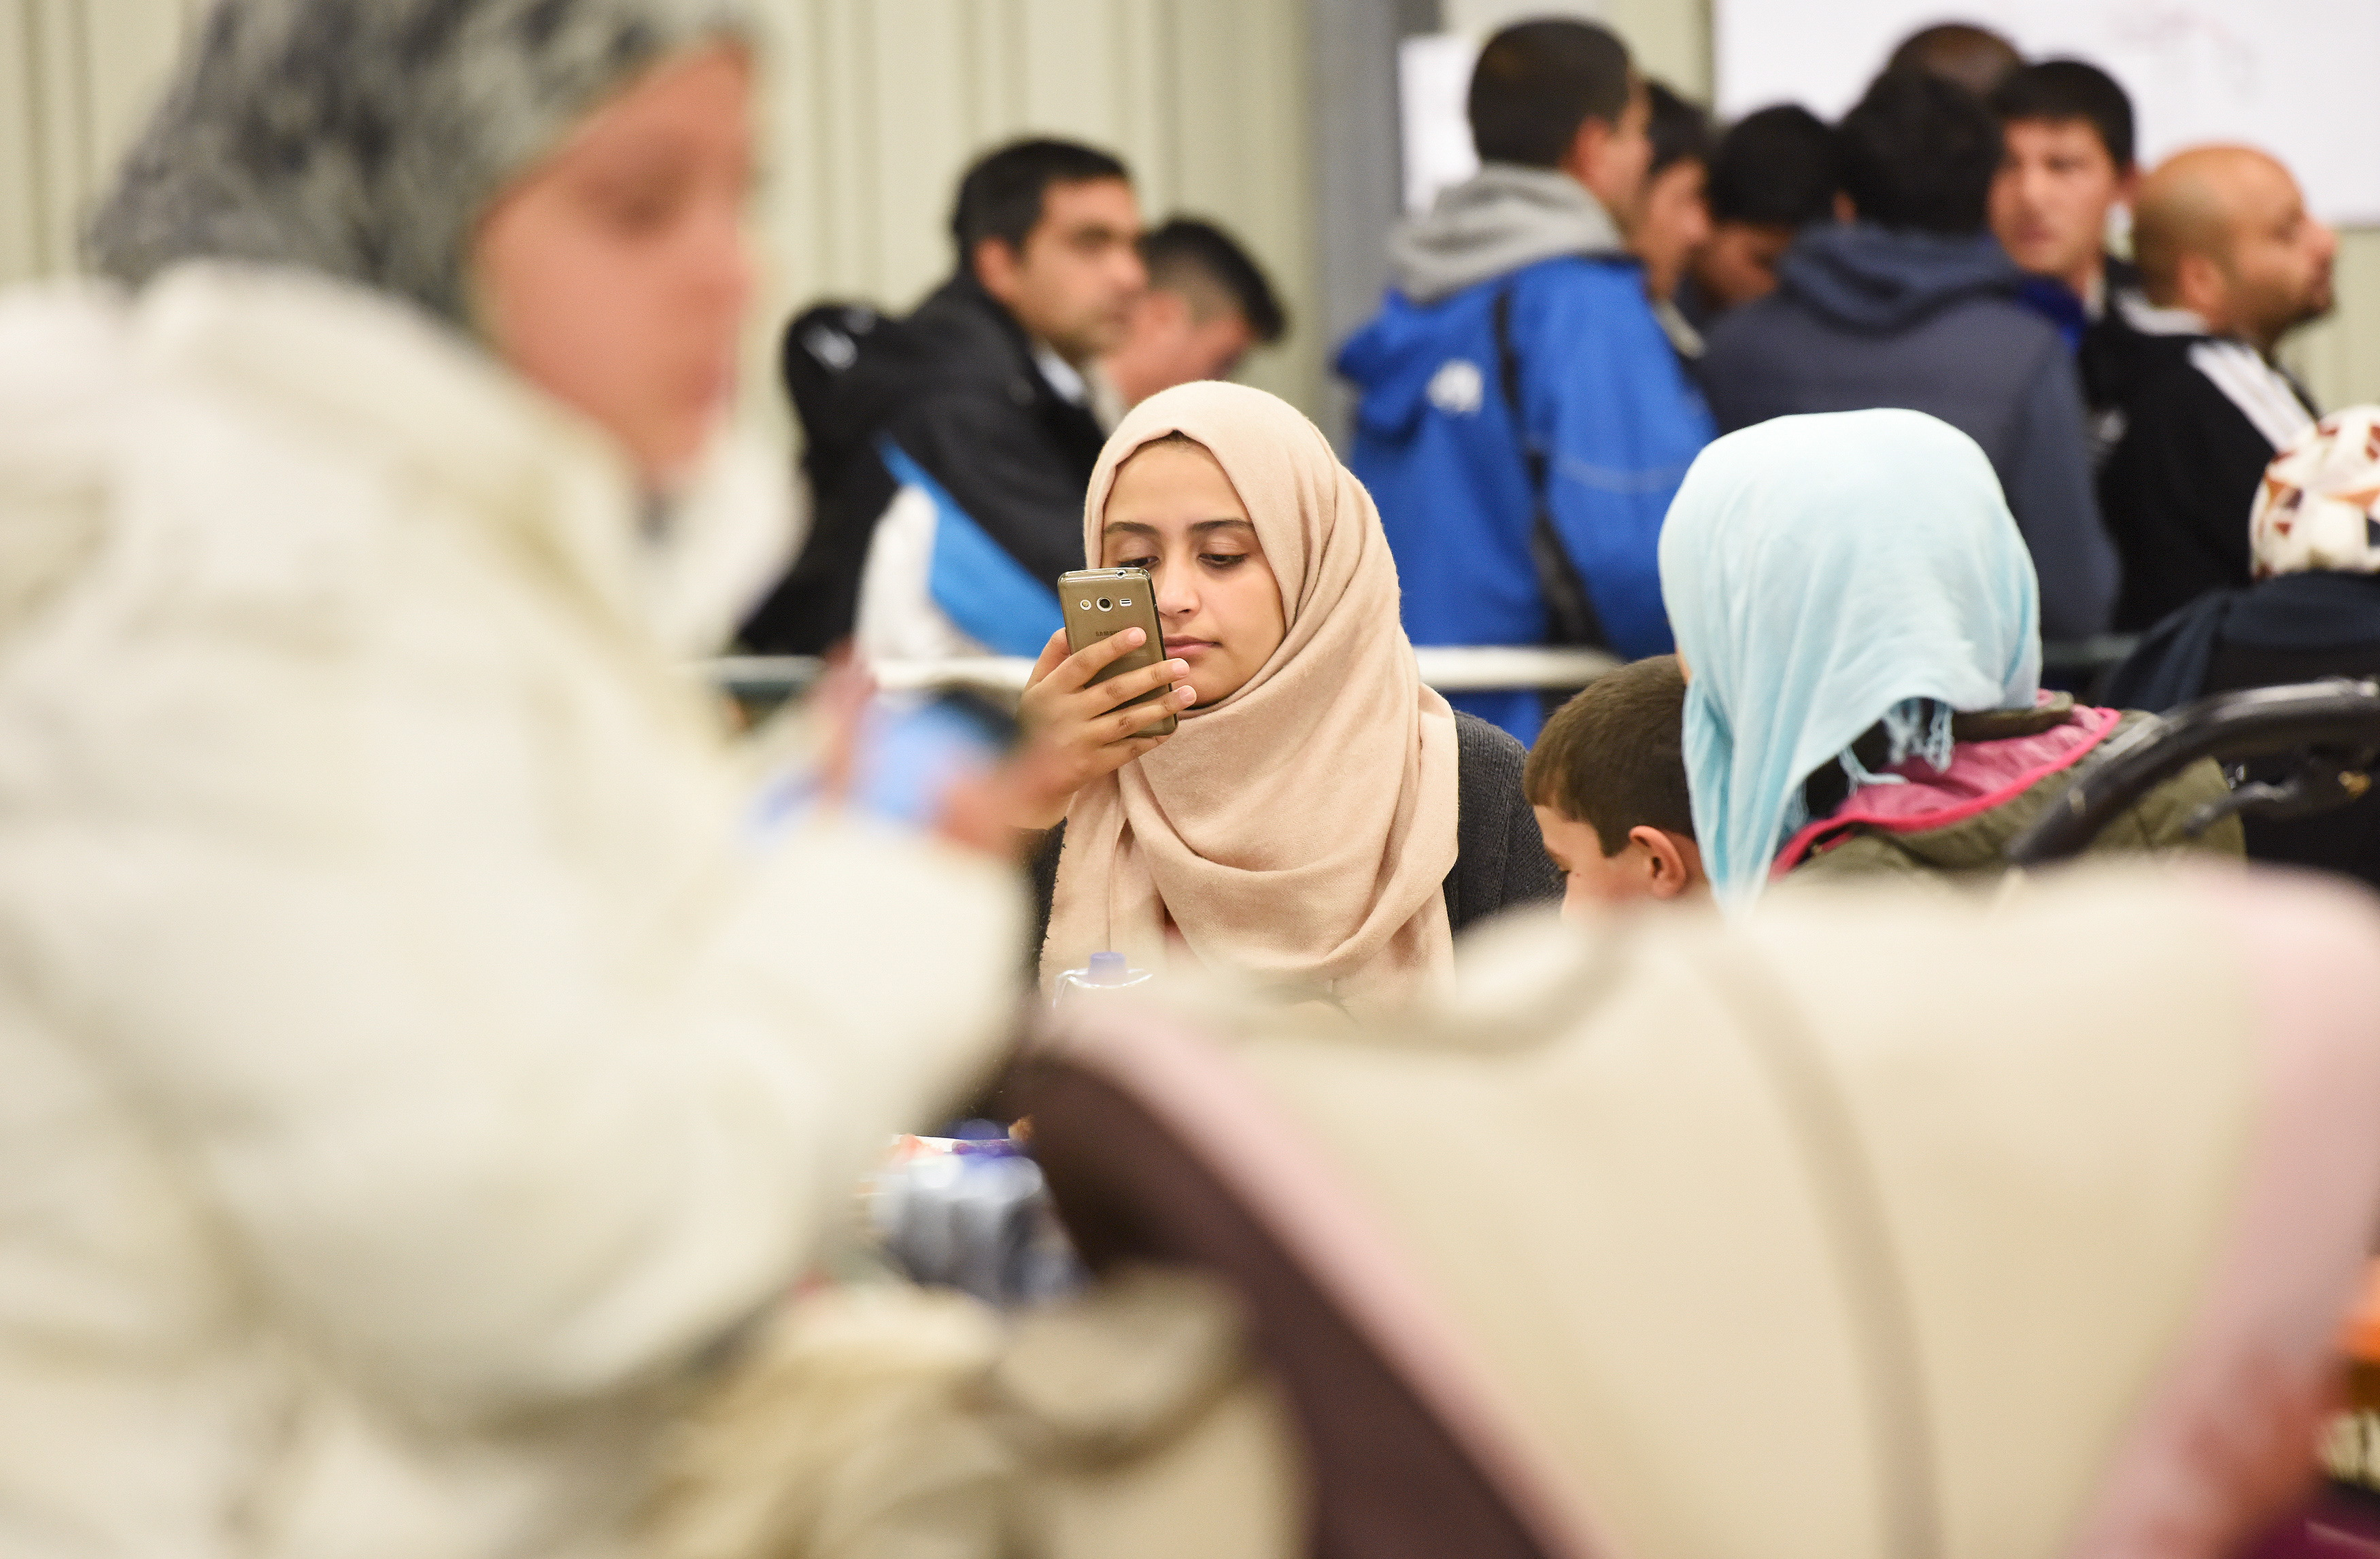 A migrant uses her cell phone in a canteen in a refugee camp in Celle, Lower-Saxony, Germany October 15, 2015. With the approach of winter, authorities are scrambling to find warm places to stay for the thousands of refugees streaming into Germany every day. In desperation, they have turned to sports halls, youth hostels and empty office buildings. But as these options dry up, tent cities have become the fall-back plan: despite falling temperatures, a survey by German newspaper Die Welt showed at least 42,000 refugees were still living in tents. Picture taken October 15, 2015. To match Insight EUROPE-MIGRANTS/GERMANY-WINTER REUTERS/Fabian Bimmer - RTS4YGV